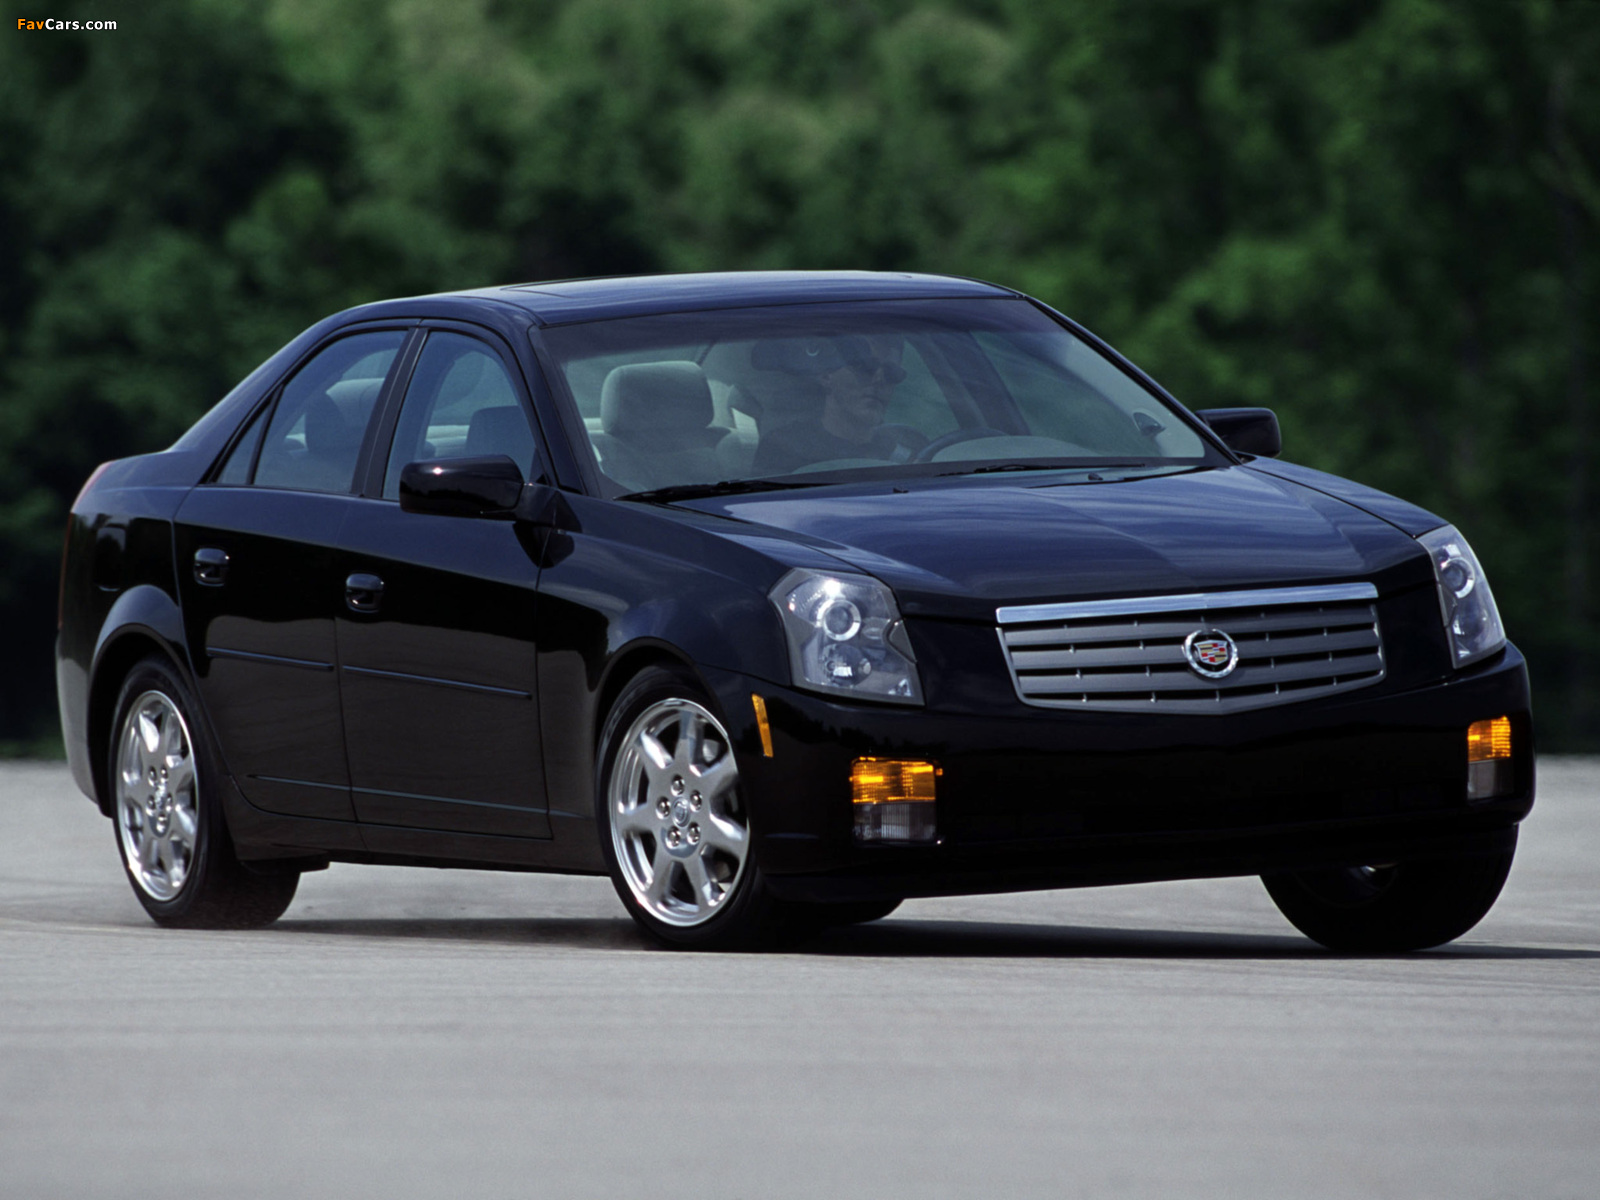 Cadillac Cts 2002 07 Wallpapers 1600x1200